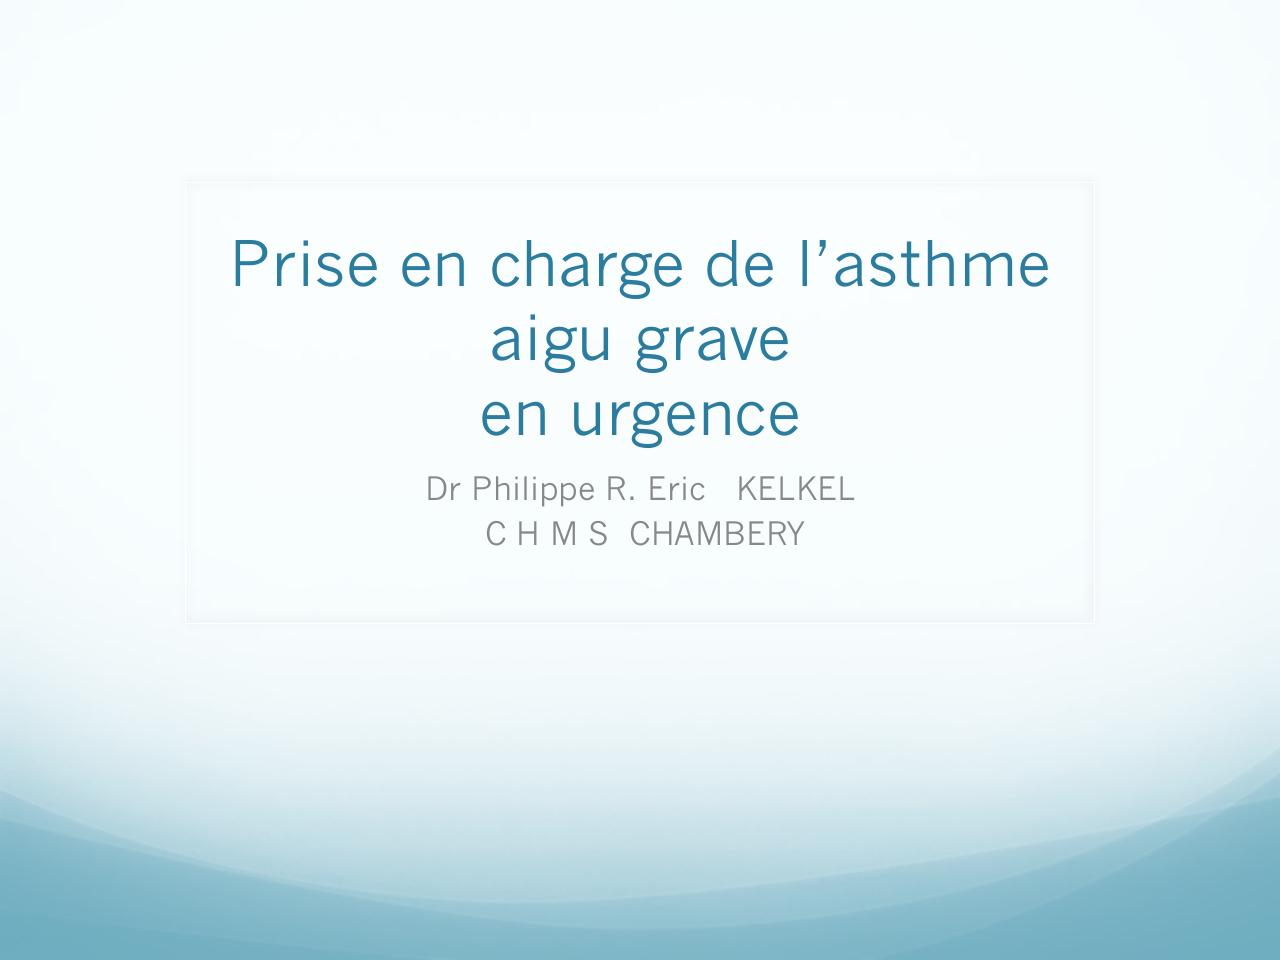 Prise en charge asthme urgence.pdf - page 1/15